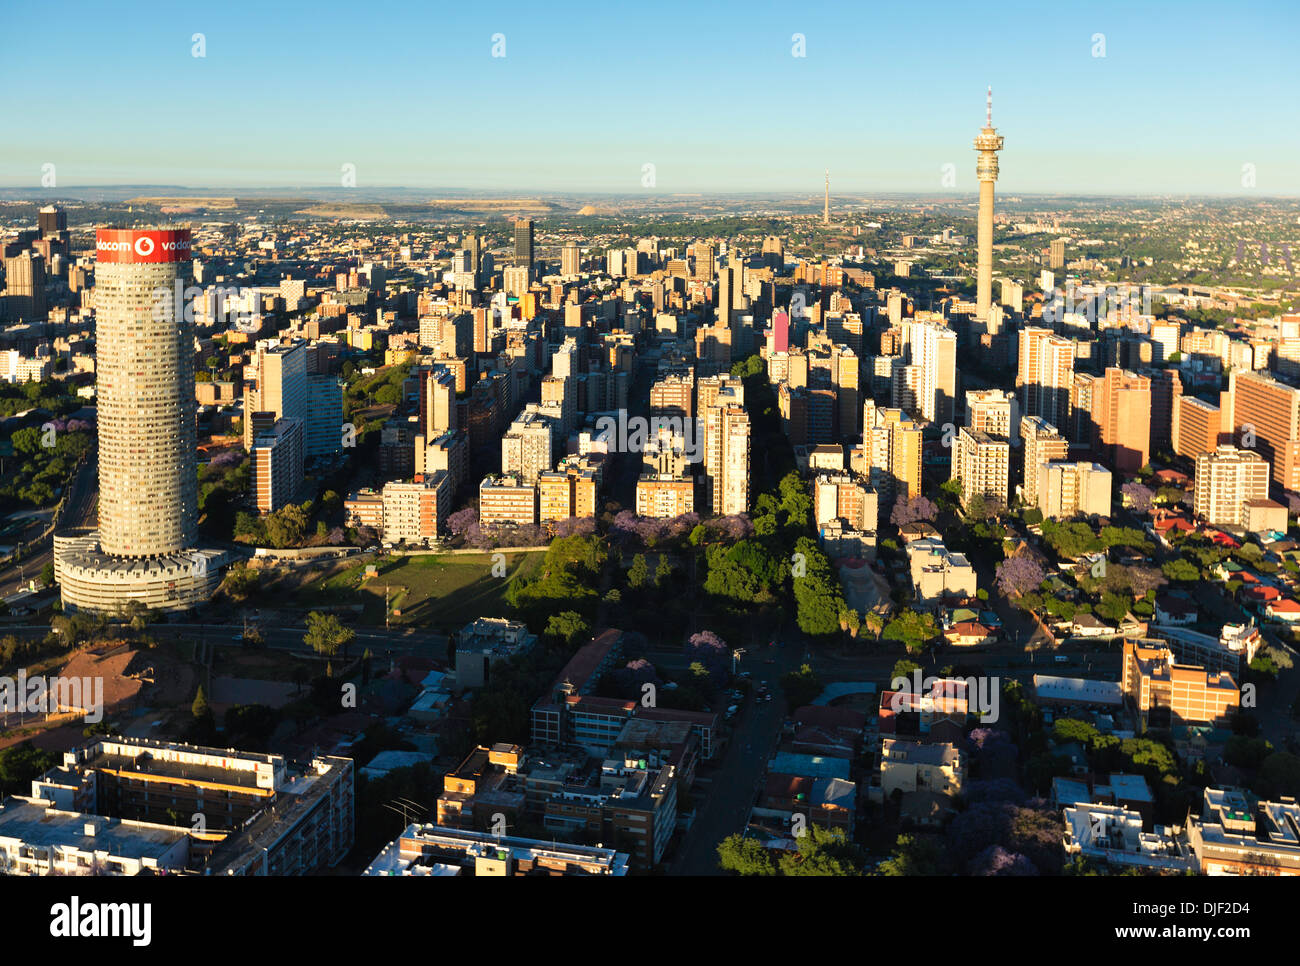 Aerial view of Hillbrow with Ponte City   showing all the highrise buildings.Johannesburg.South Africa - Stock Image